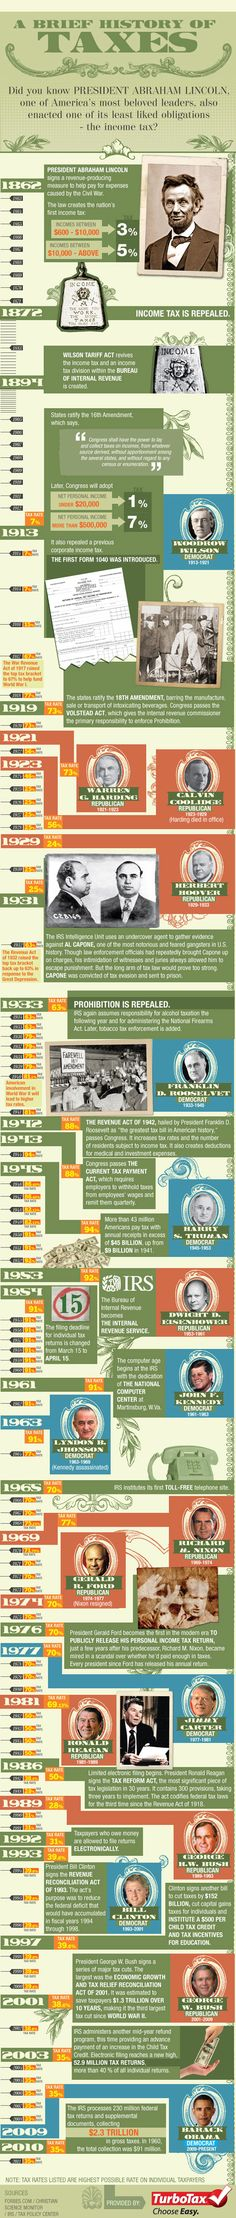 A Brief History Of Taxes [INFOGRAPHIC]